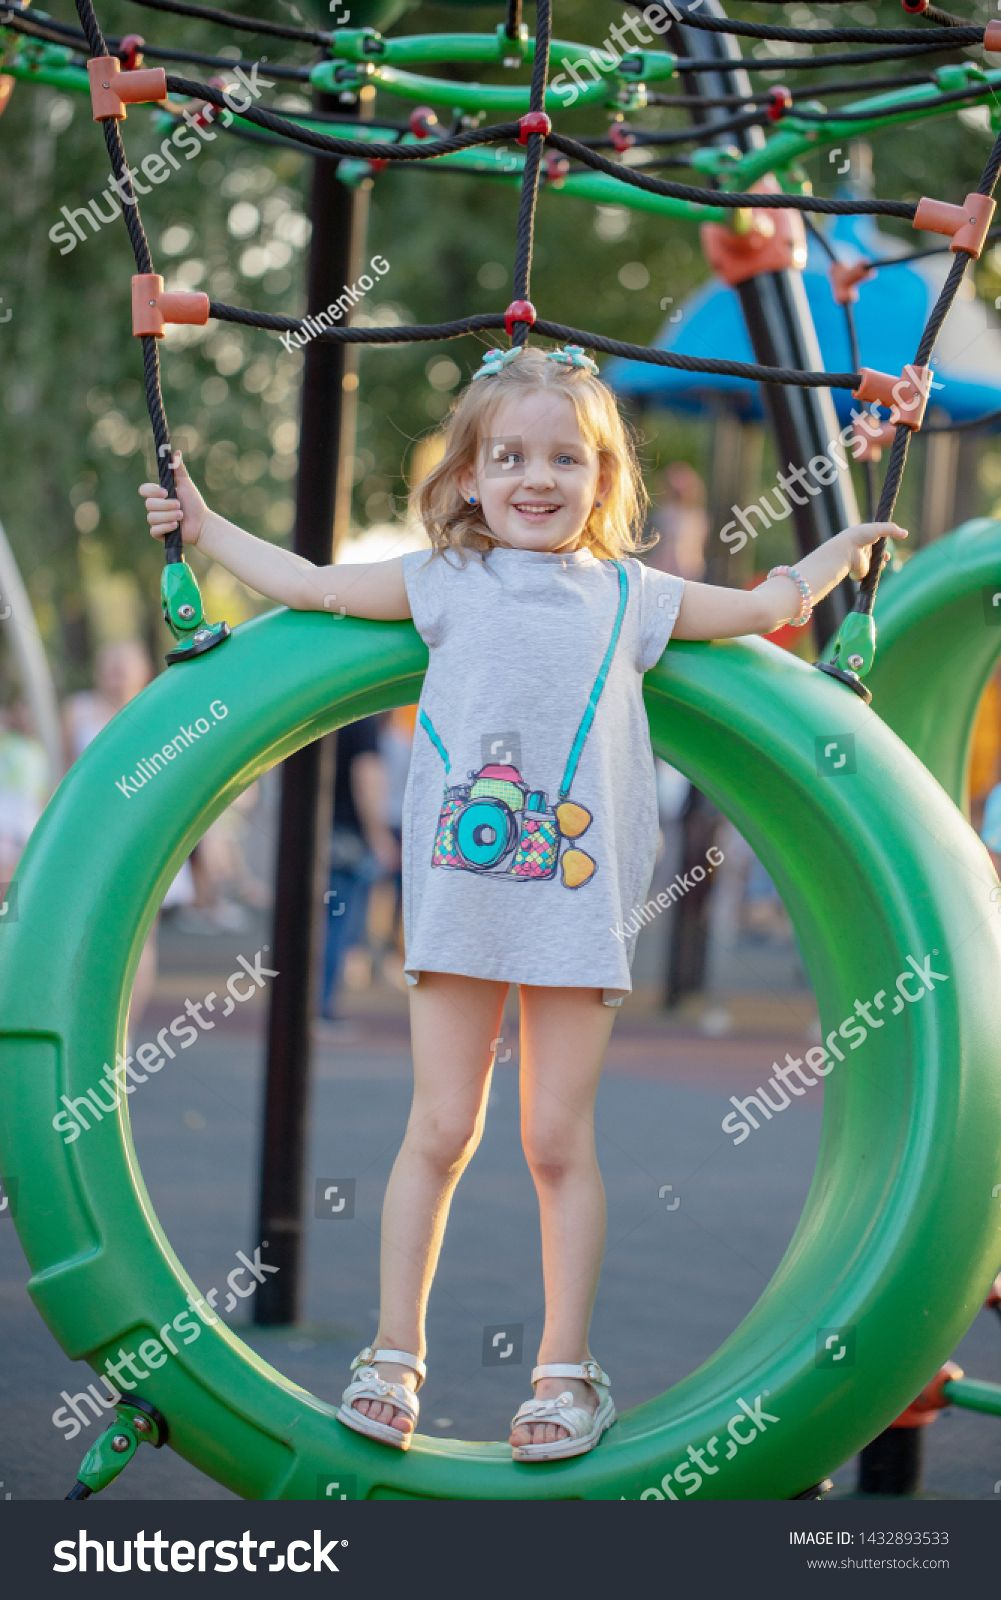 Cute Little Girl Having Fun On A Playground Outdoors In Summer